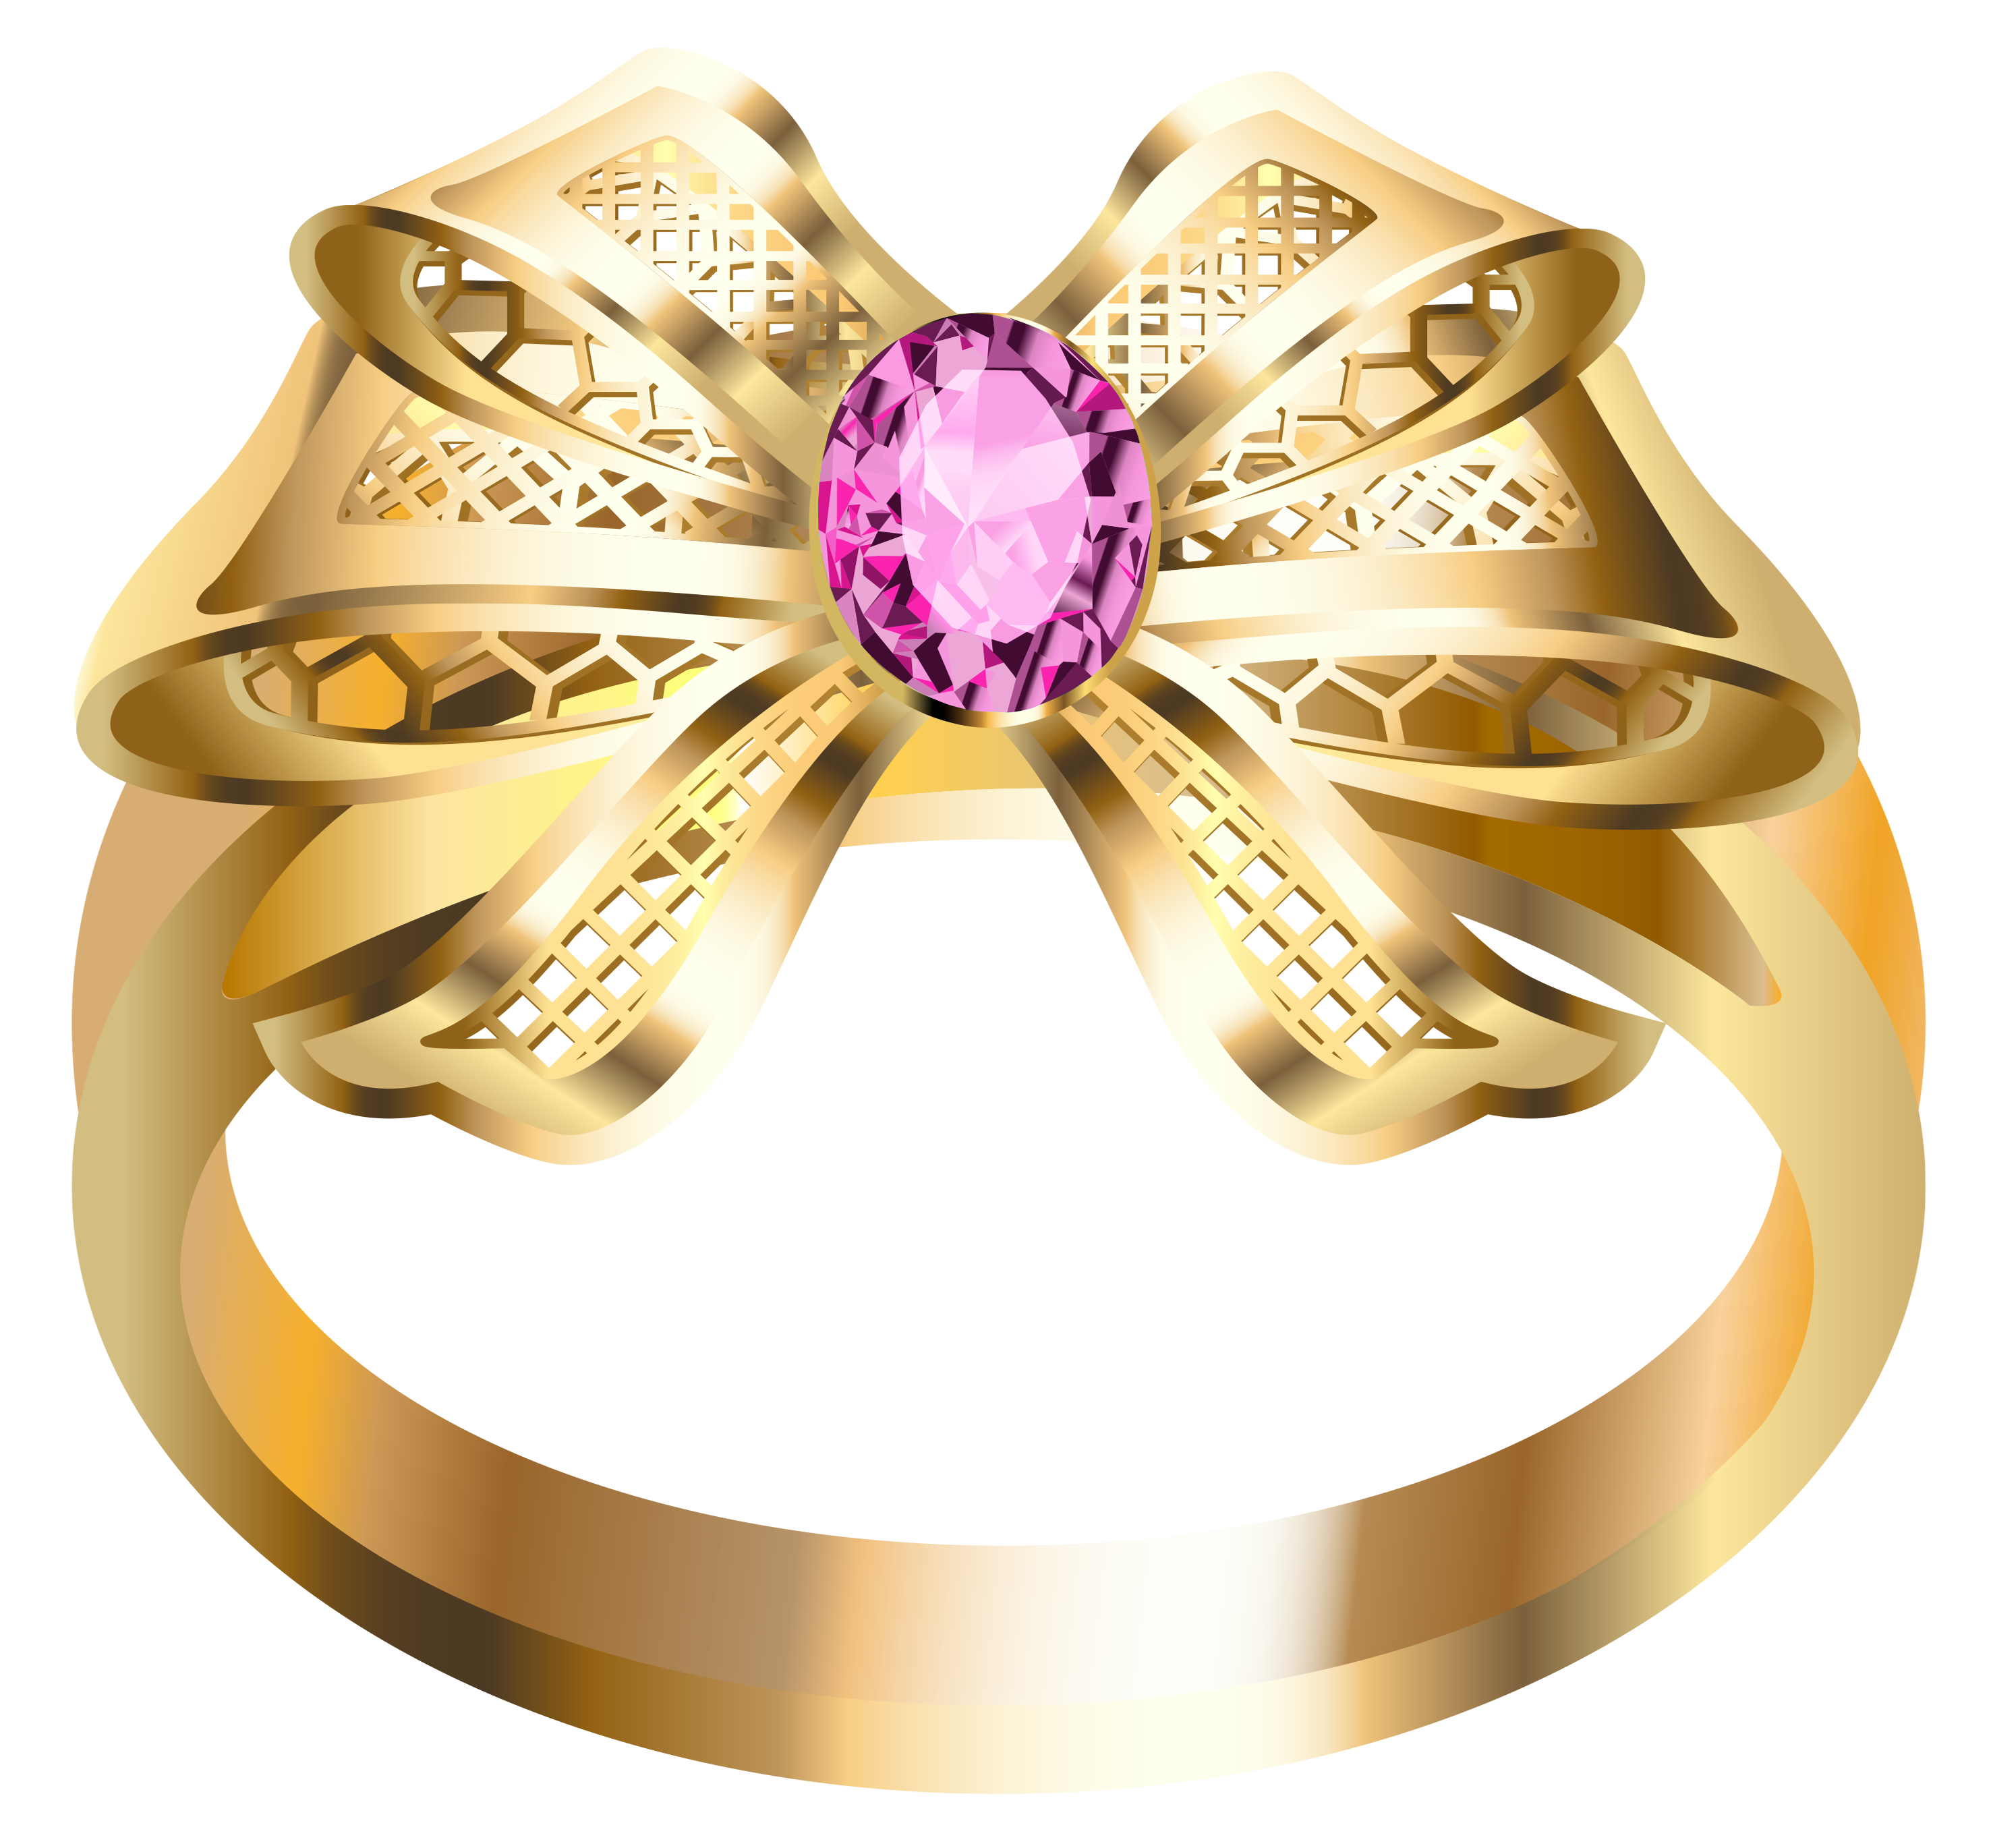 Gold Ring With Diamonds PNG Image.